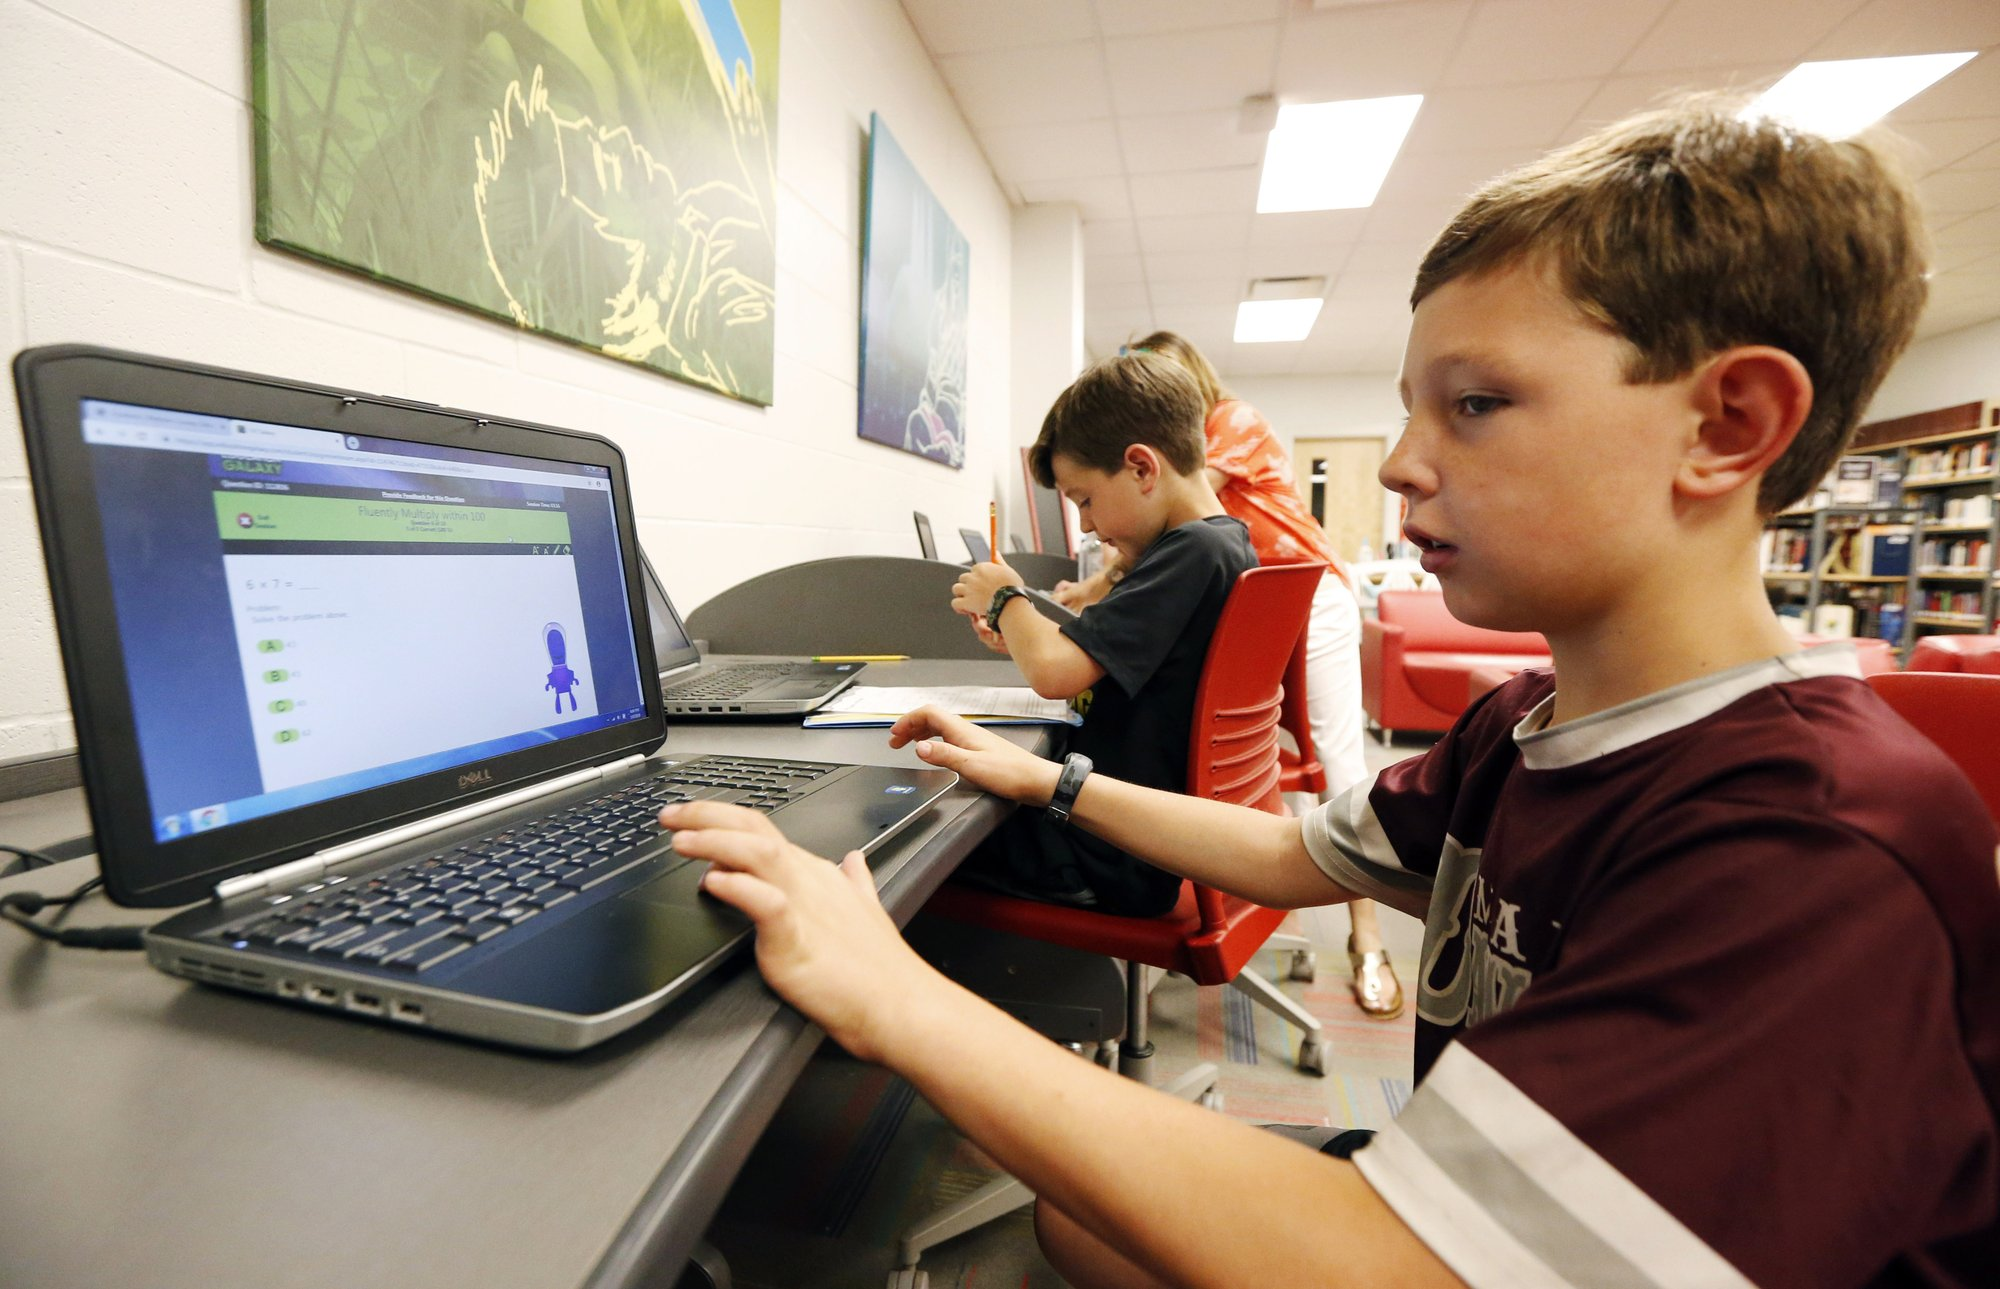 3 million US students don't have home internet